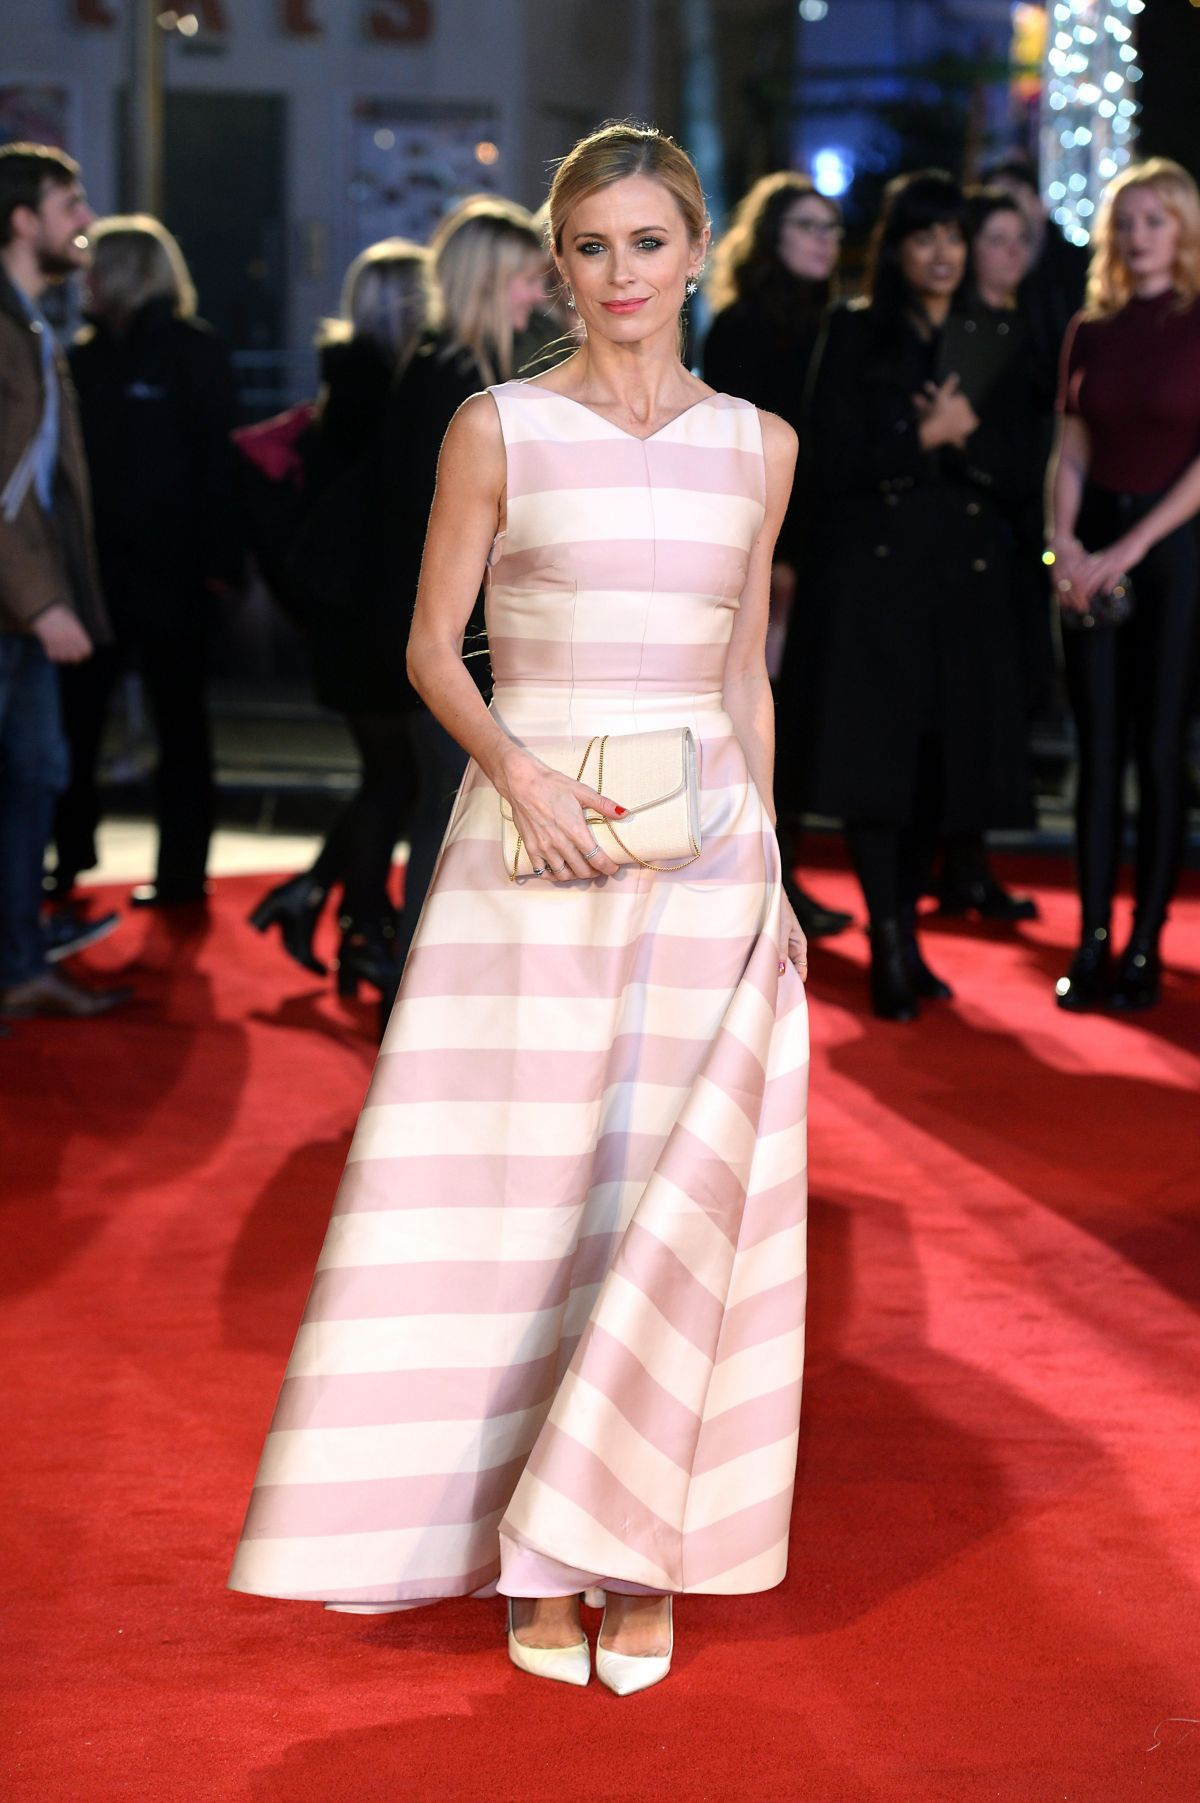 LAURA BAILEY at The Danish Girl Premiere in London 12/08/2015